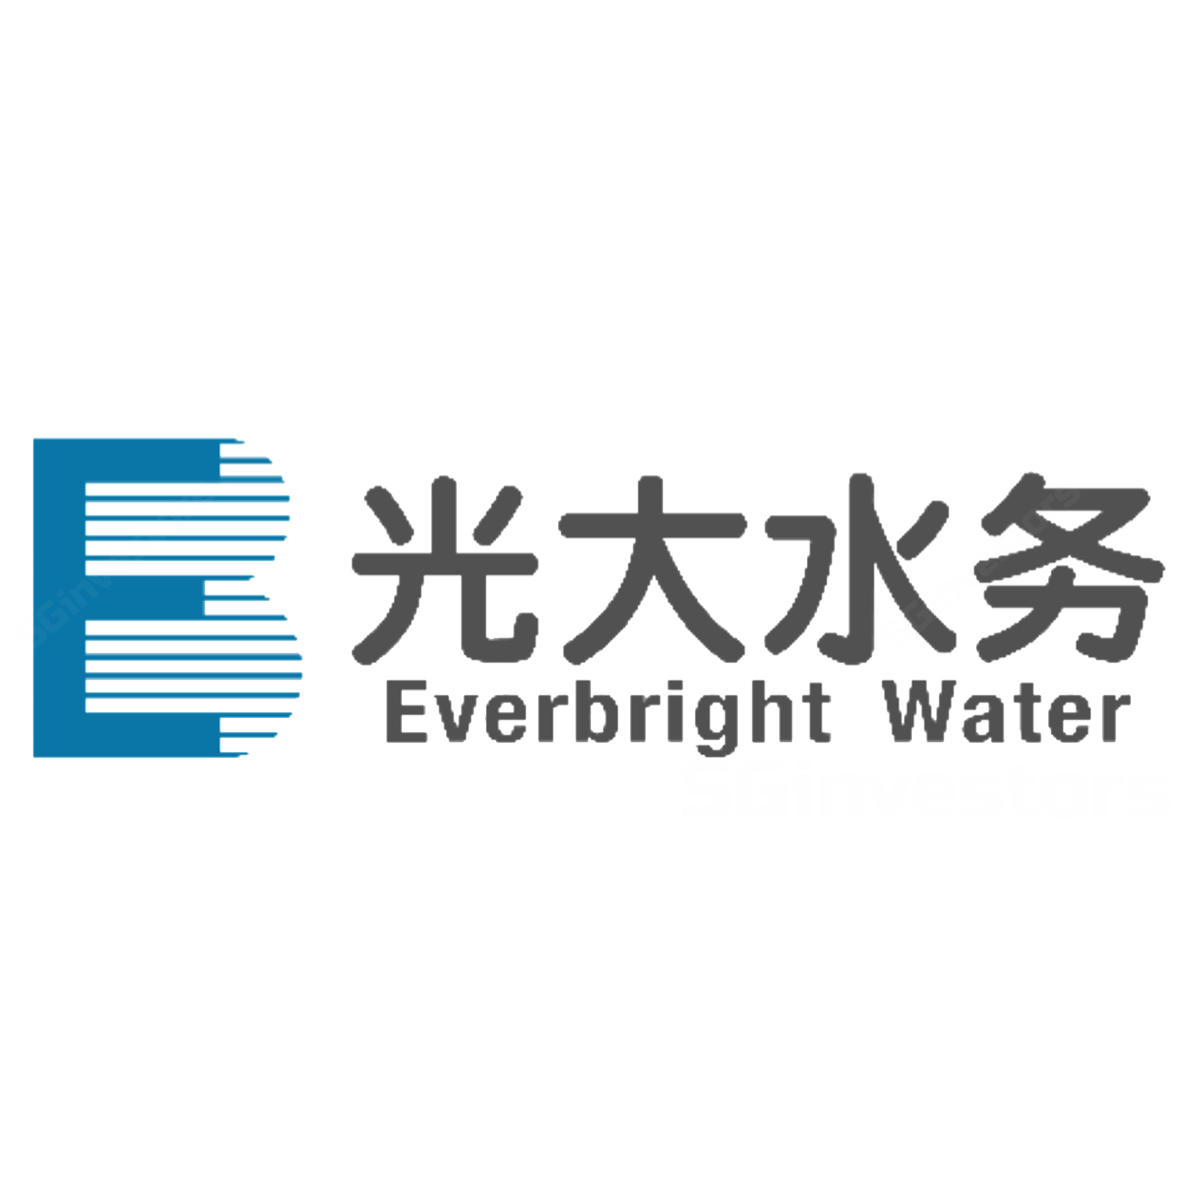 China Everbright Water Limited - Phillip Securities 2017-08-10: Ongoing Turnaround